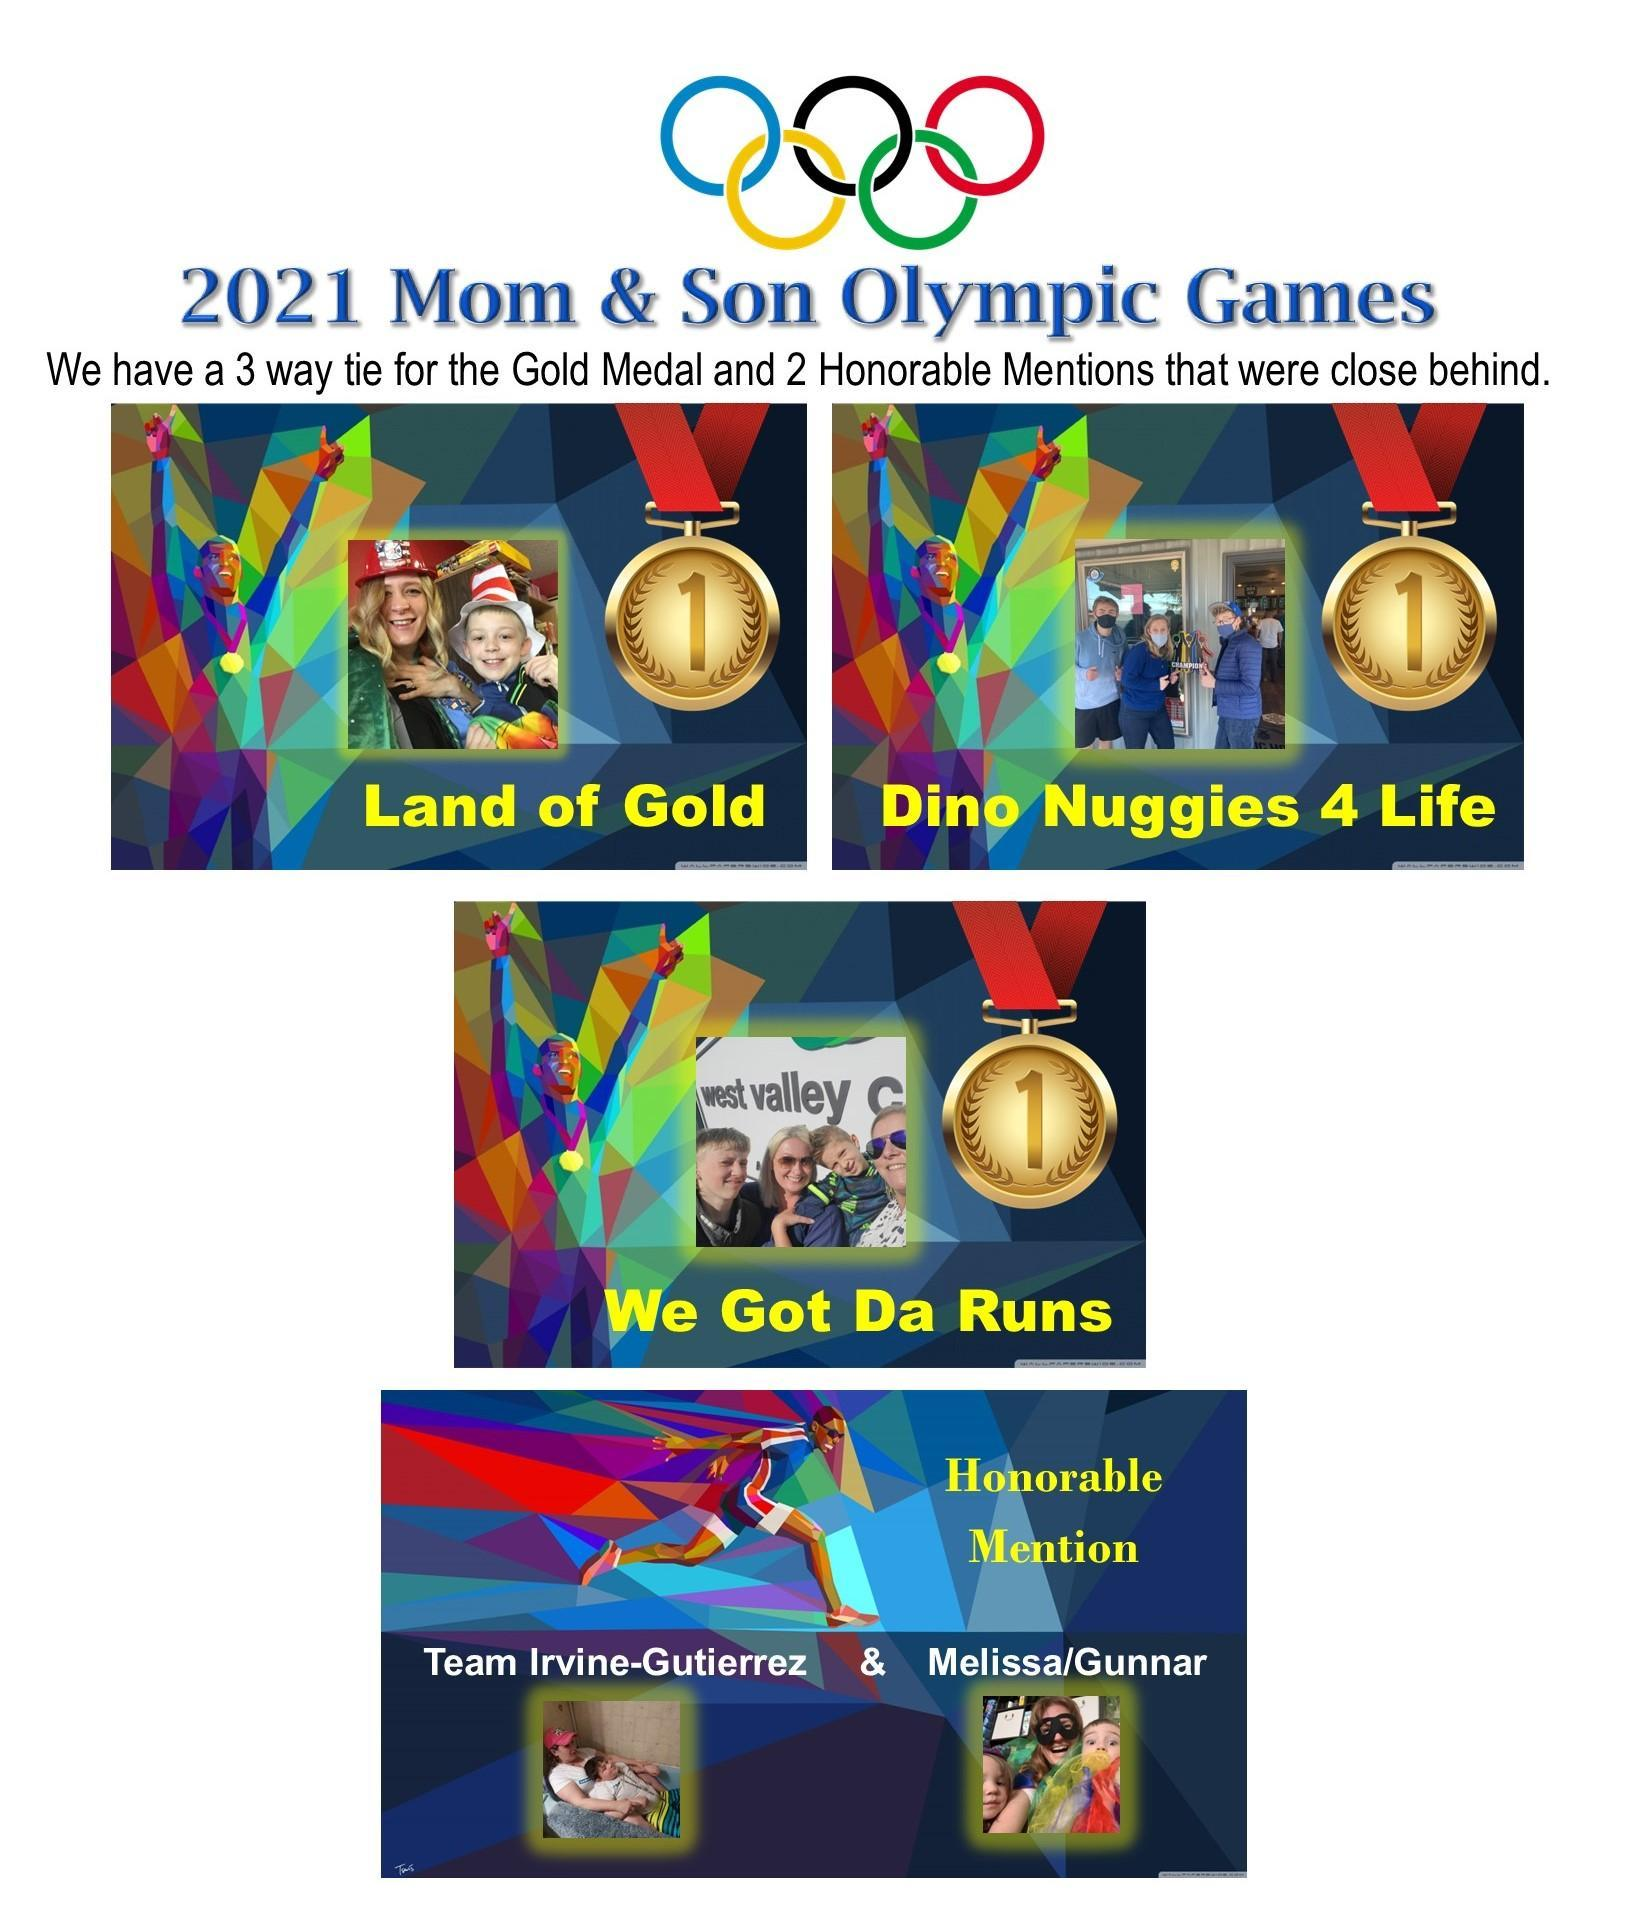 Mom & Son Olympic Games 2021 Medalists